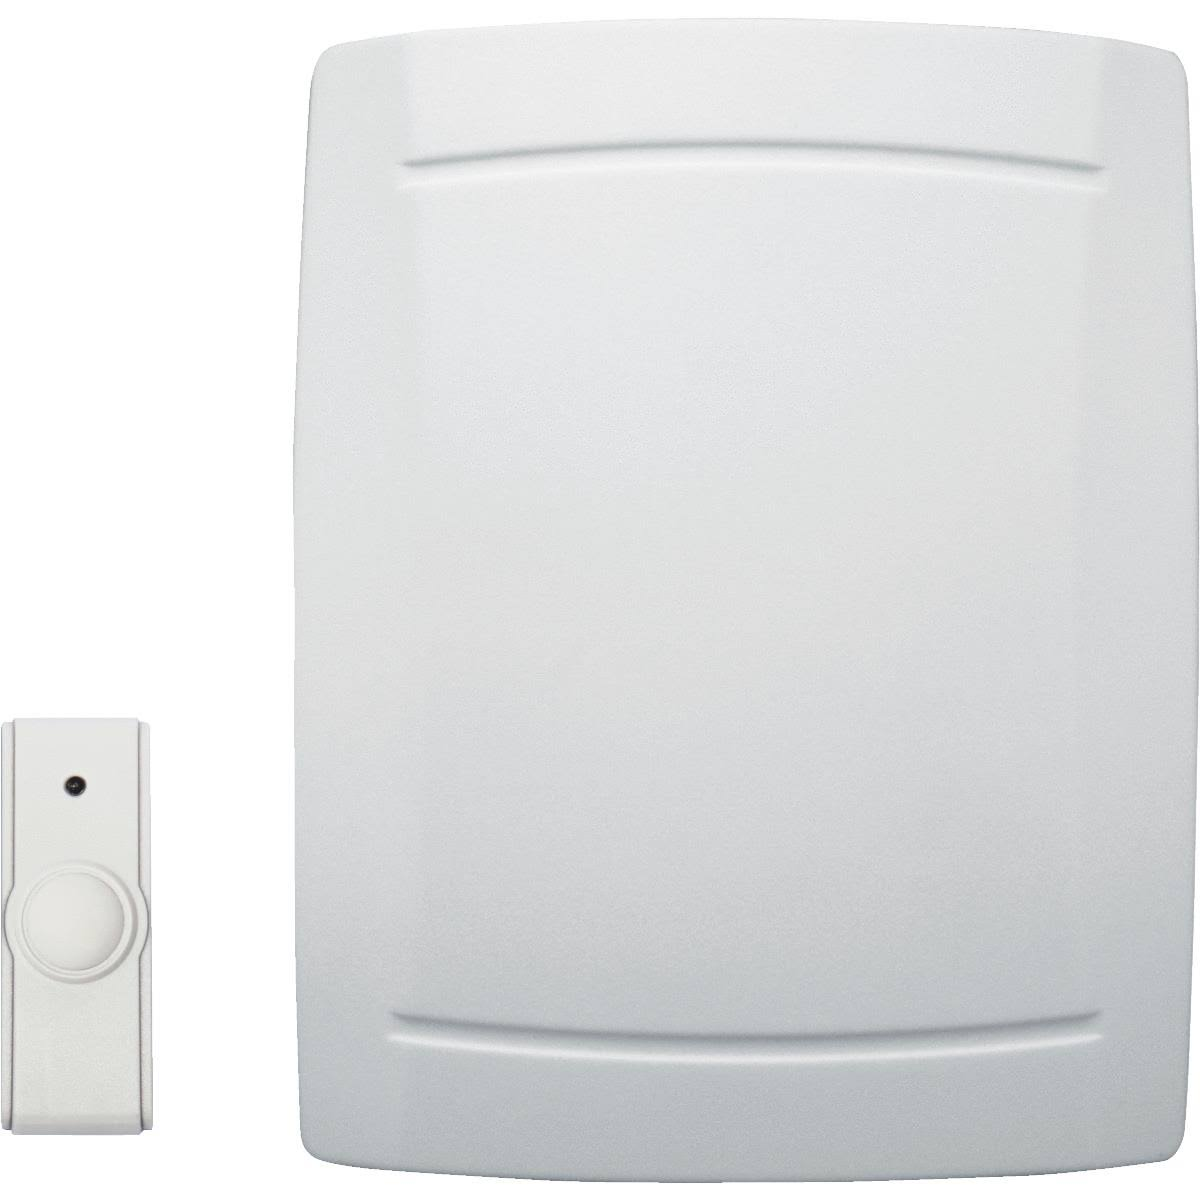 IQ America Wireless Battery-Operated Door Chime Kit